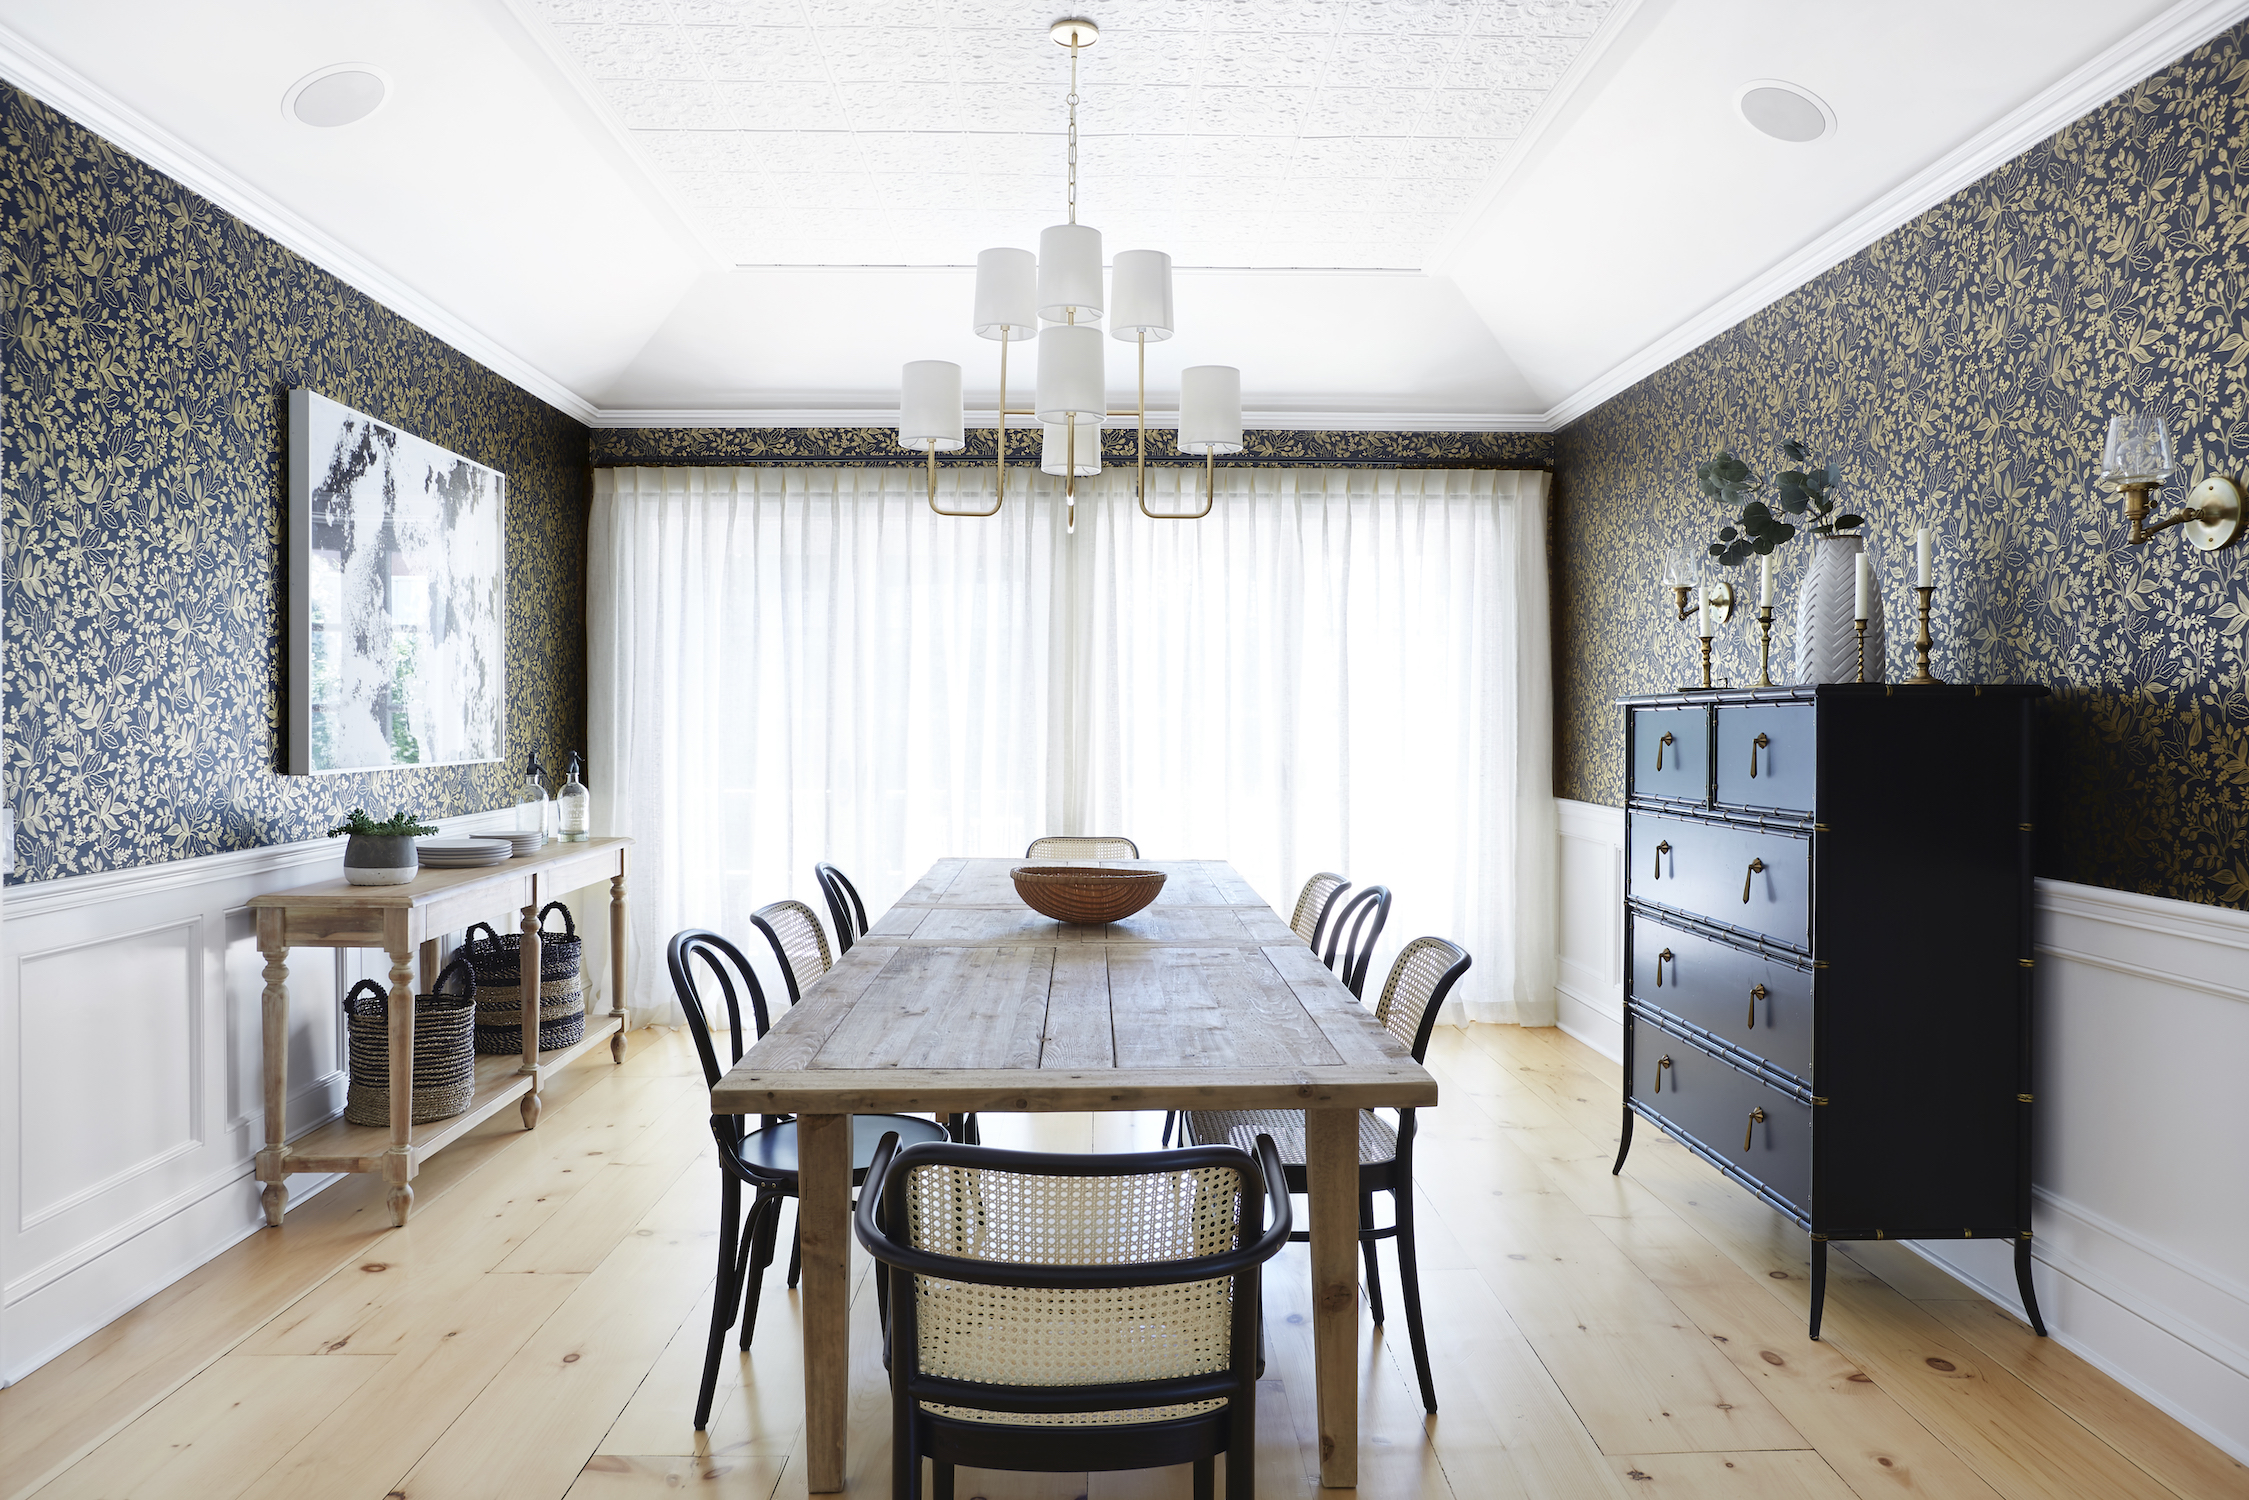 Closed linen drapes control the lighting and set the mood in a neutral dining room.